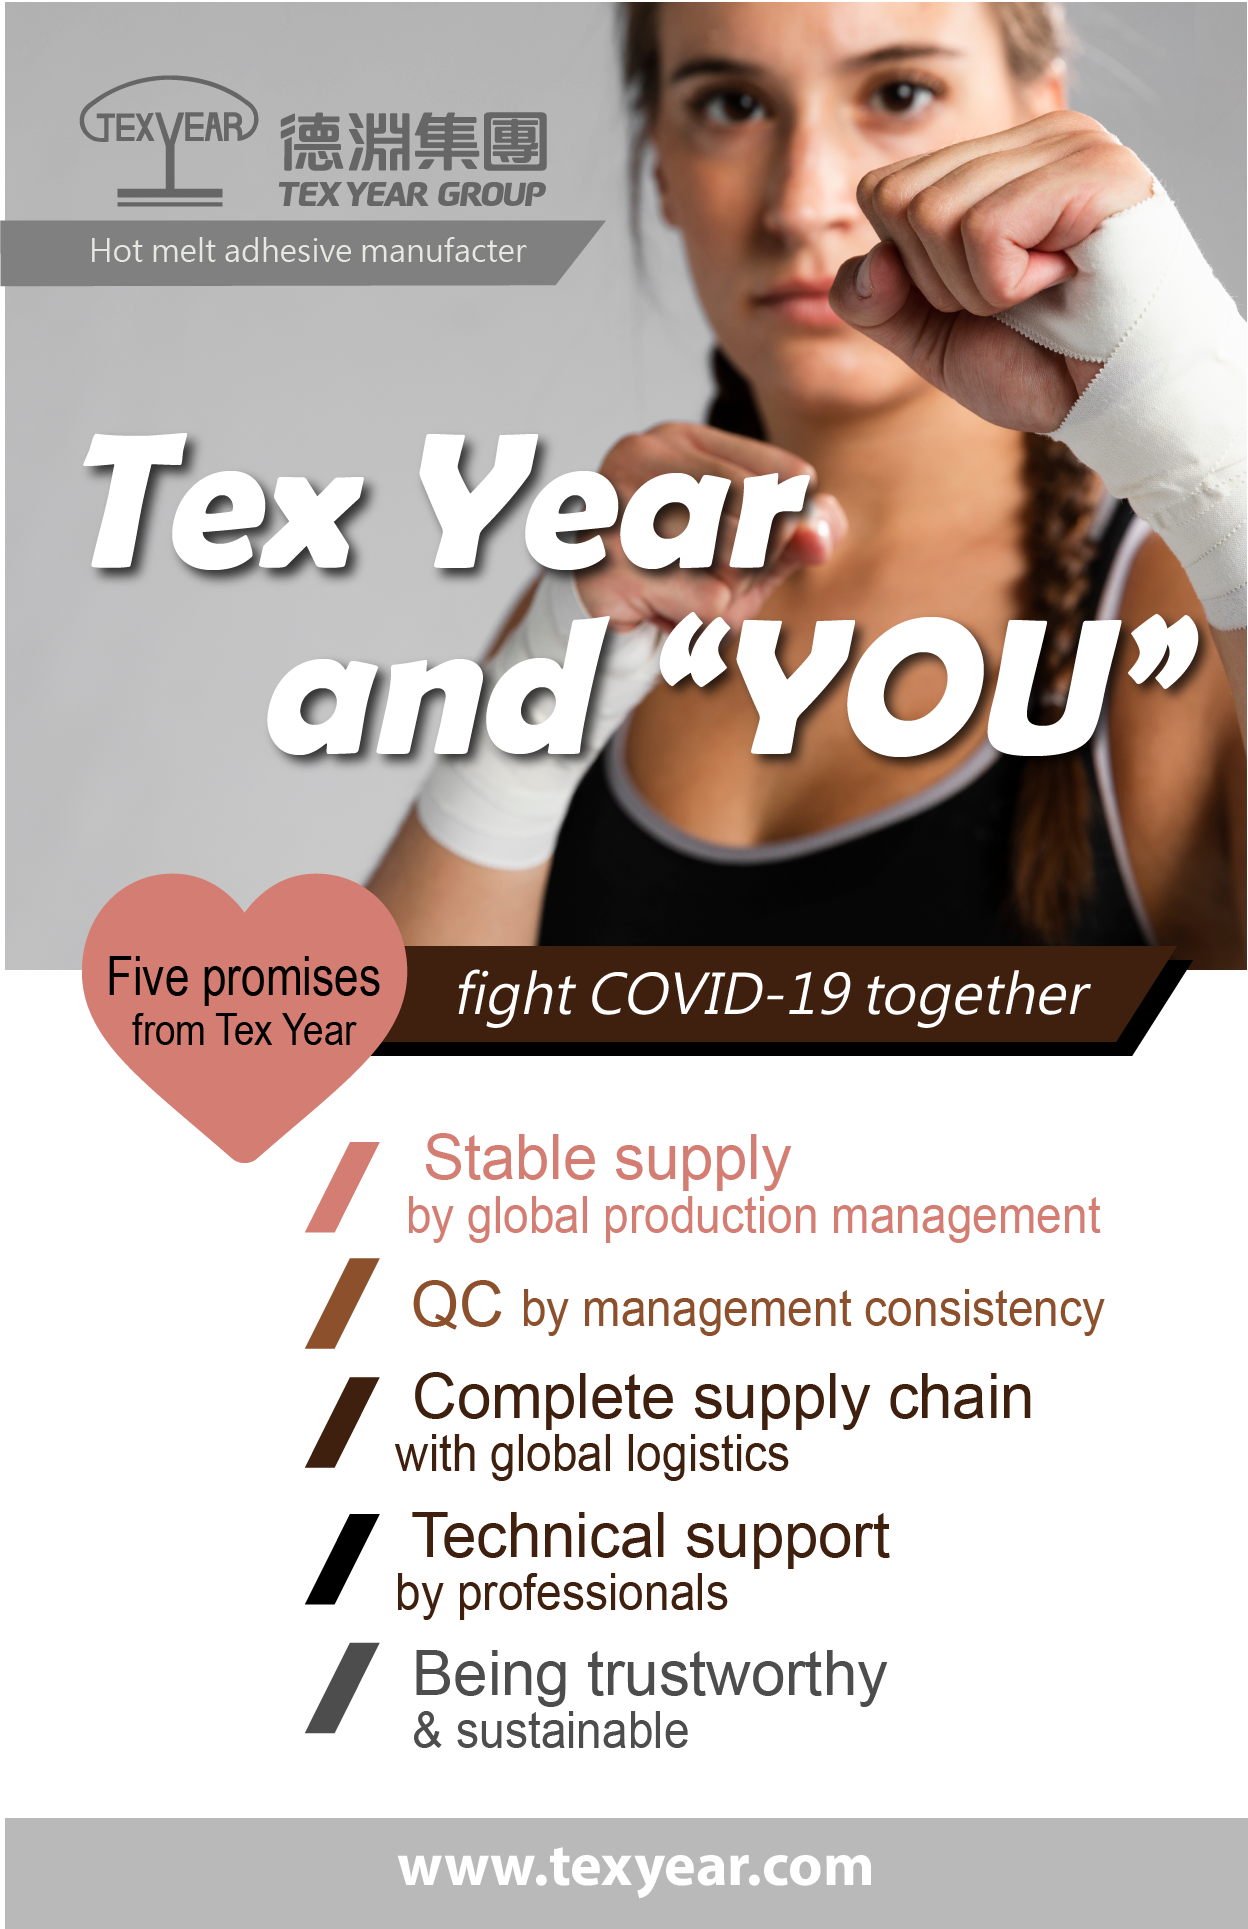 Five promises from Tex Year